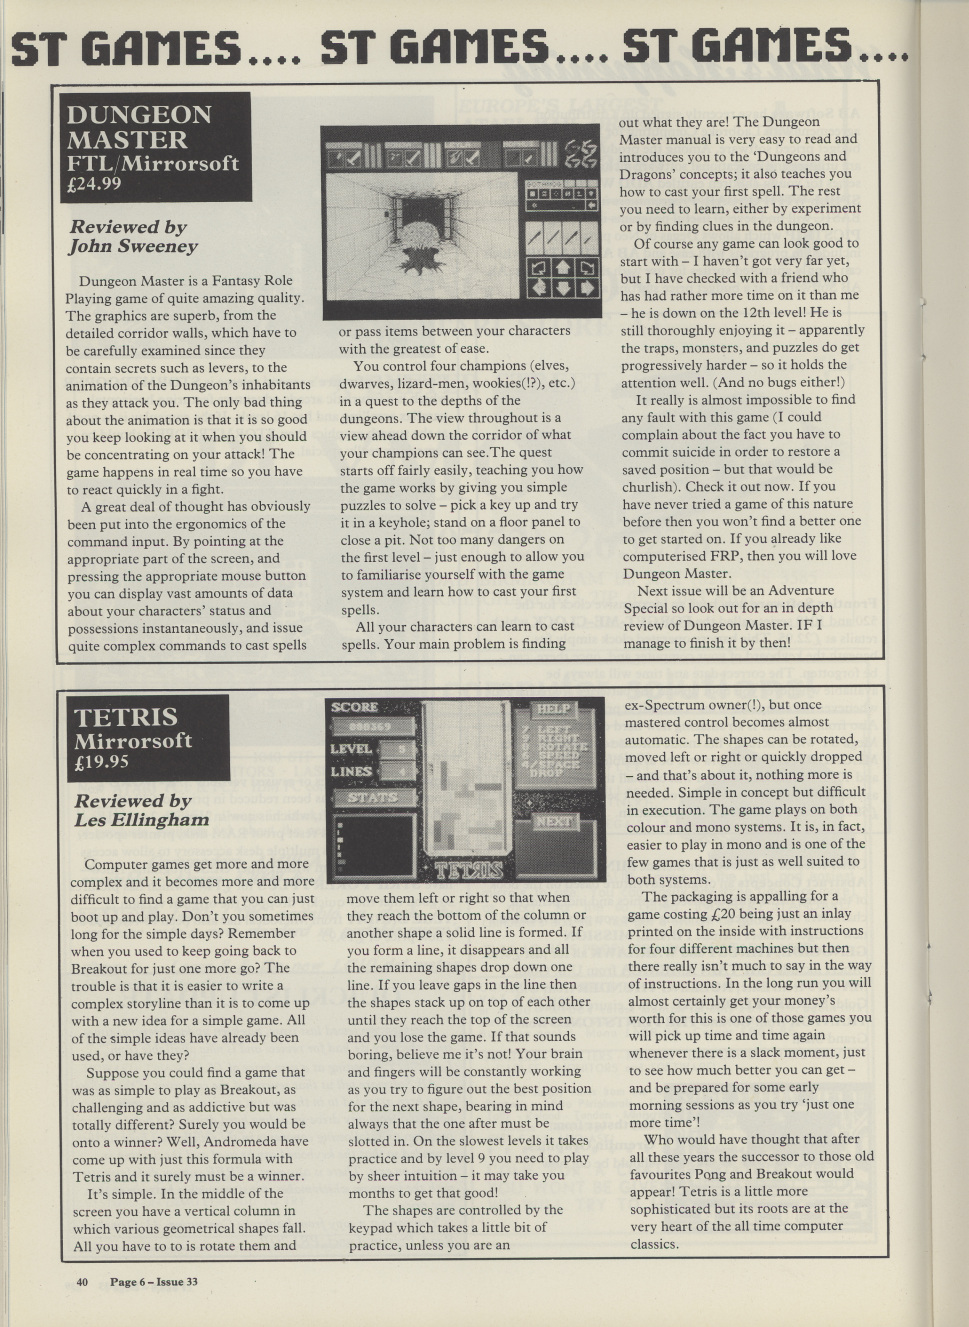 Dungeon Master for Atari ST Review published in British magazine 'Page 6', Issue #33 May-June 1988, Page 40